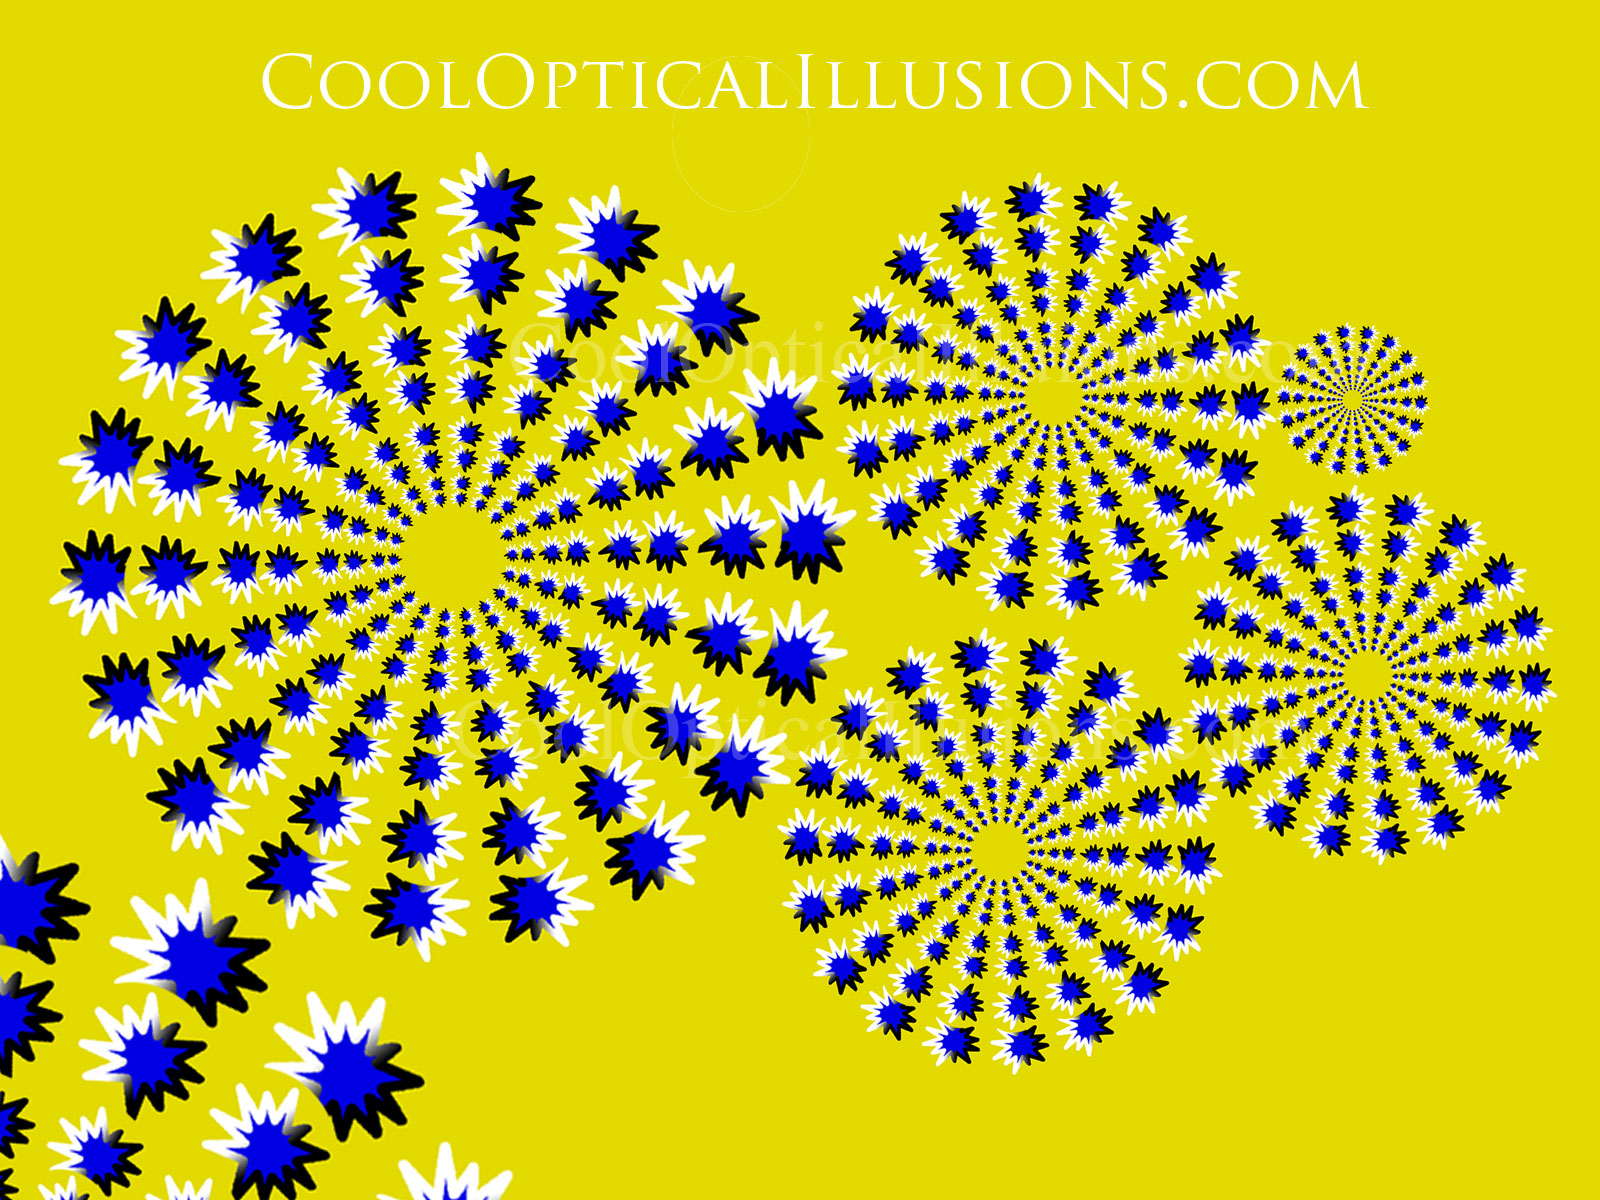 moving stars desktop backgrounds @ cool optical illusions